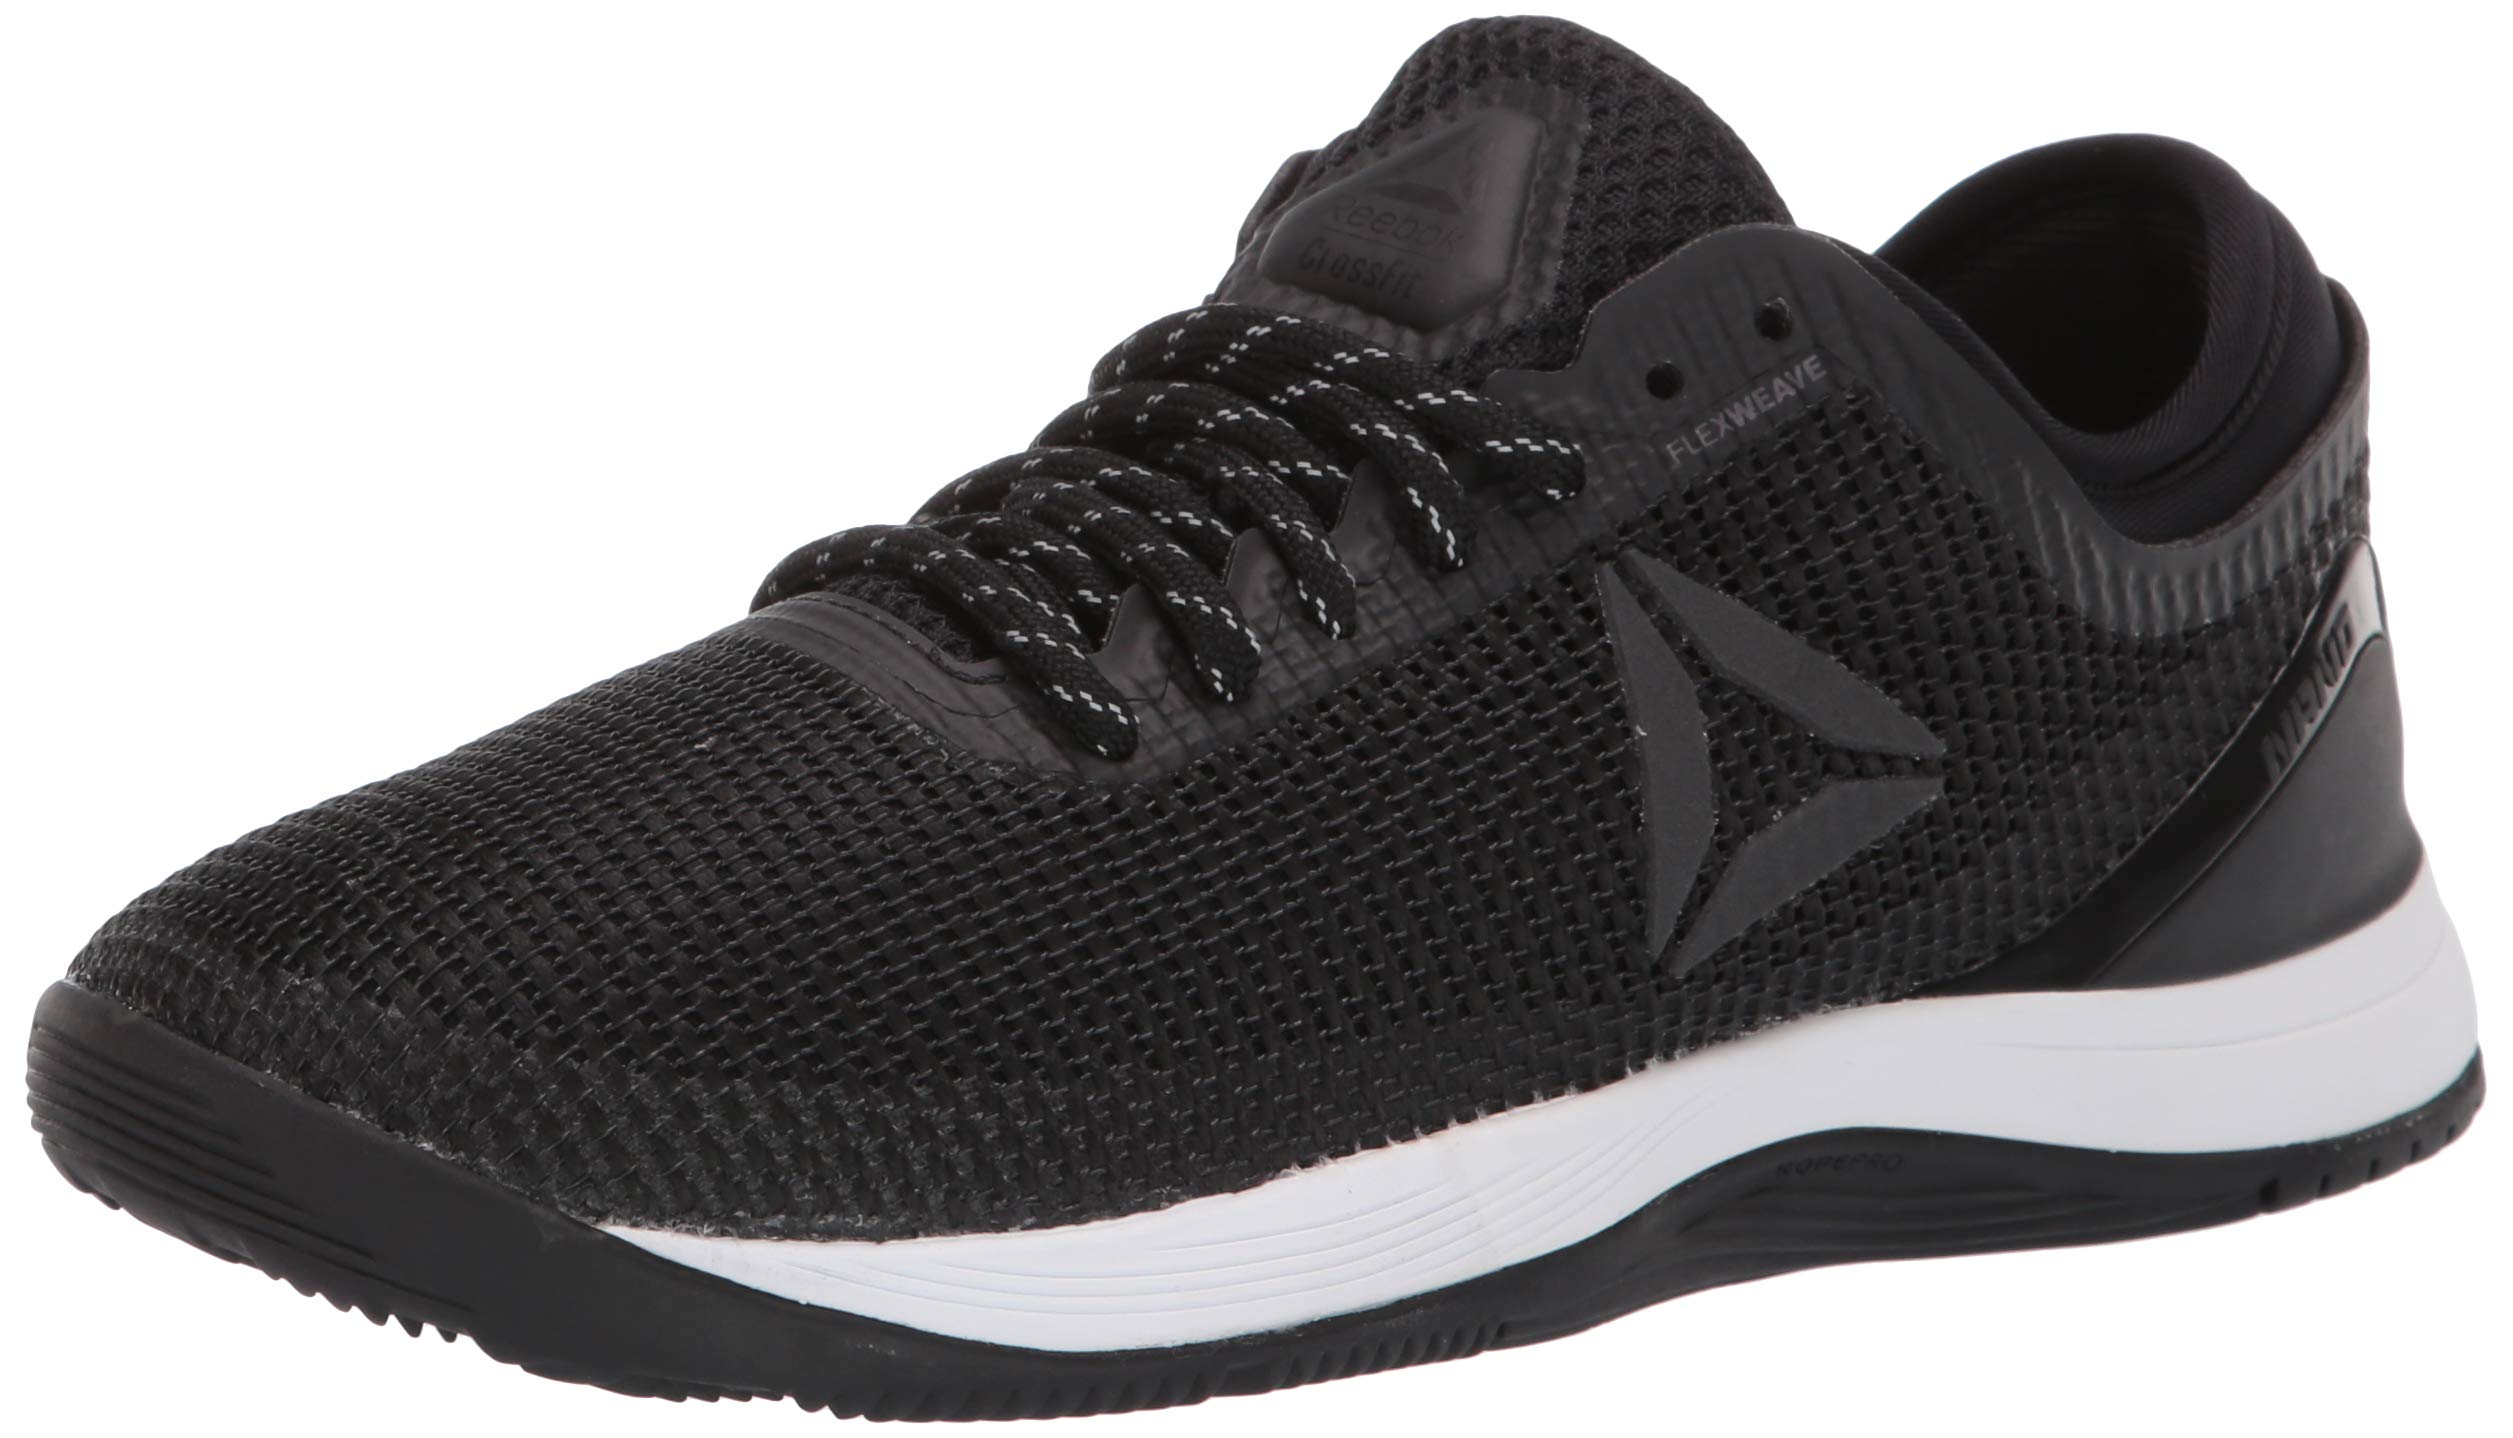 Reebok Women's CROSSFIT Nano 8.0 Flexweave Cross Trainer, Black/White, 5 M US by Reebok (Image #1)